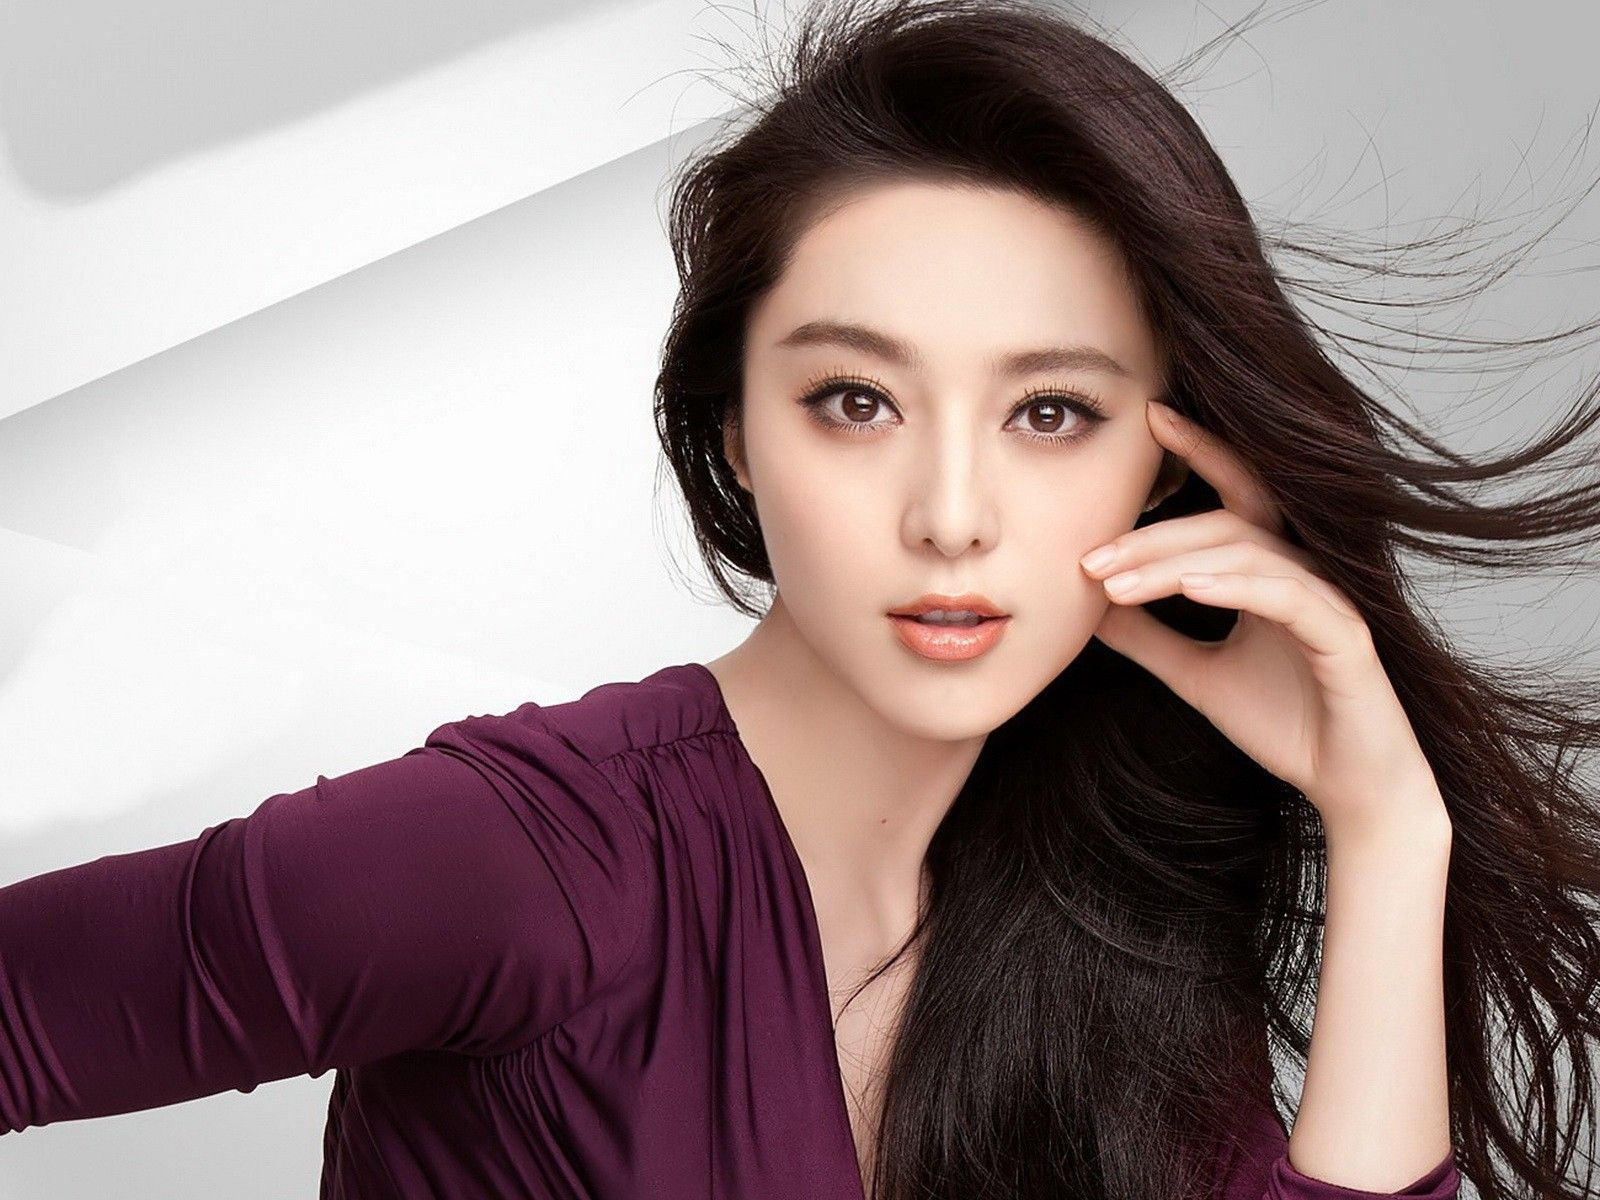 Wallpaper Information: Pretty Fan BingBing 24959